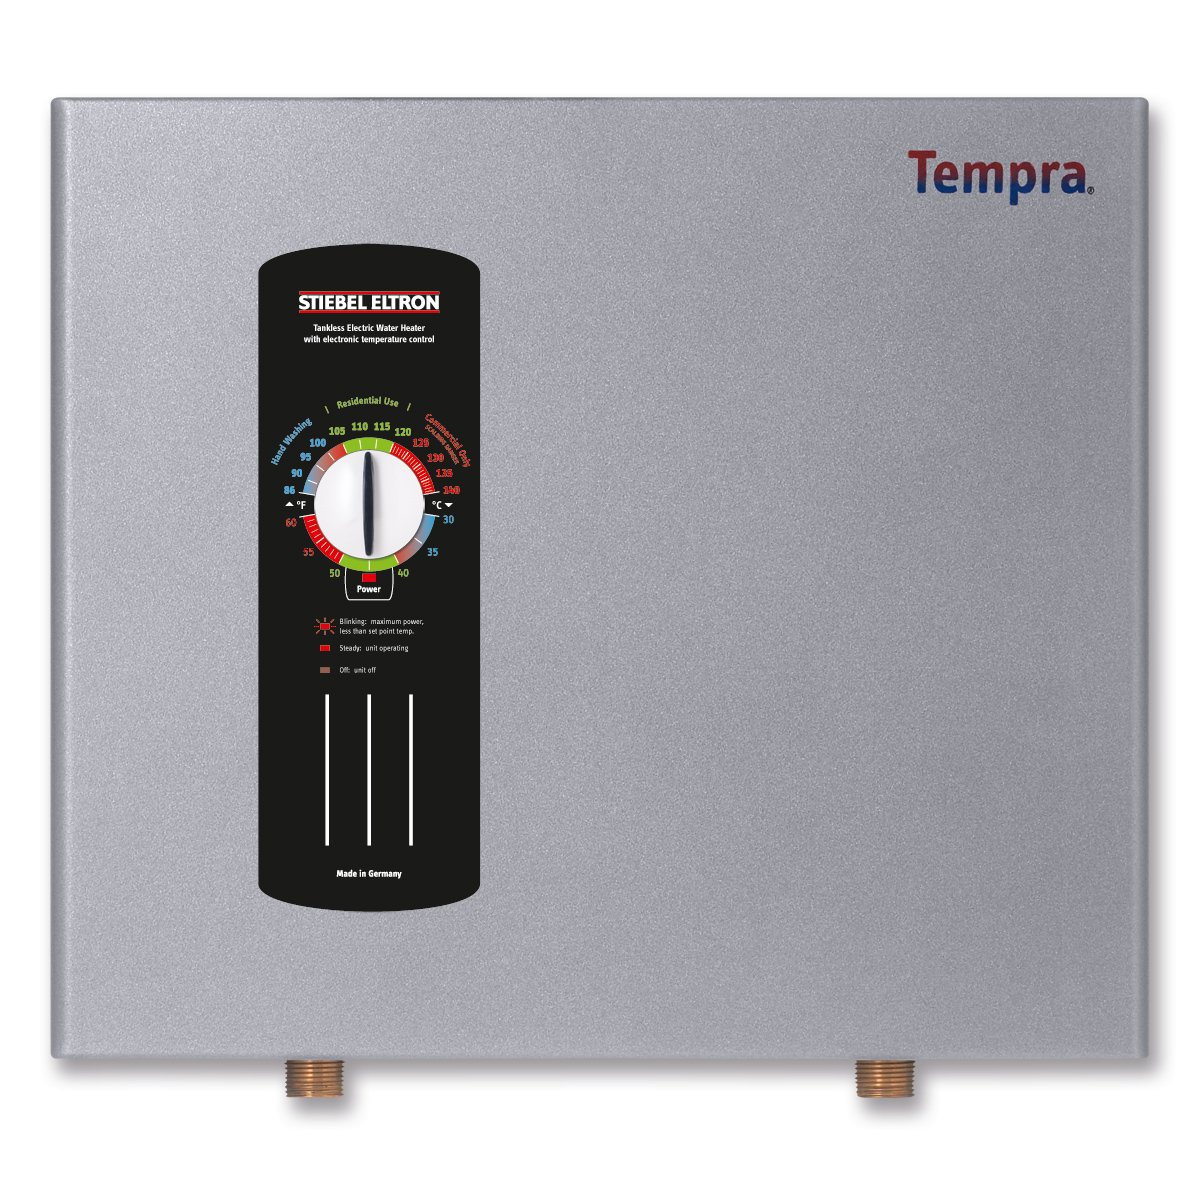 Stiebel Eltron Tempra 12 kW, tankless electric water heater with Self-Modulating Power Technology